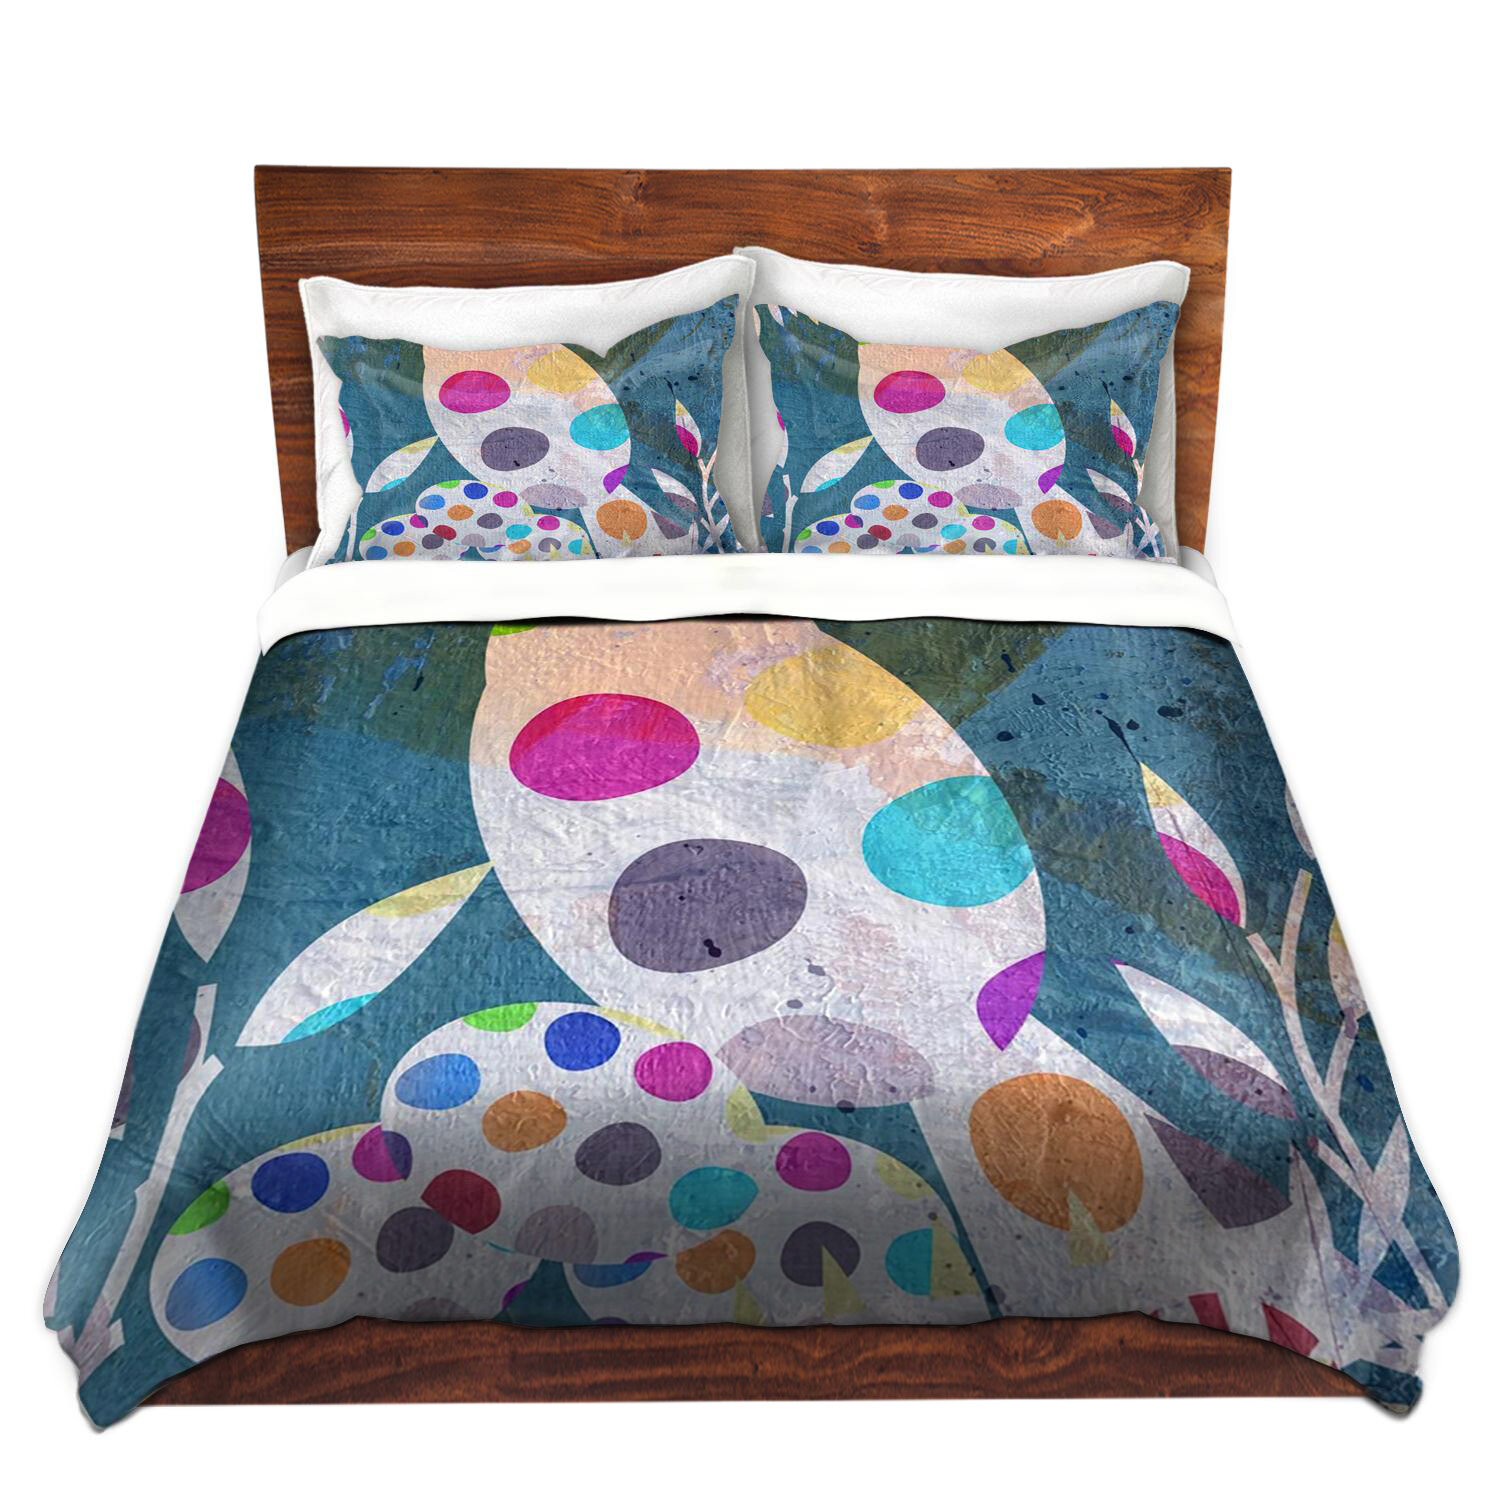 Ebern Designs Kuo Ruth Palmer Cute Bird With Eggs Microfiber Duvet Covers Wayfair